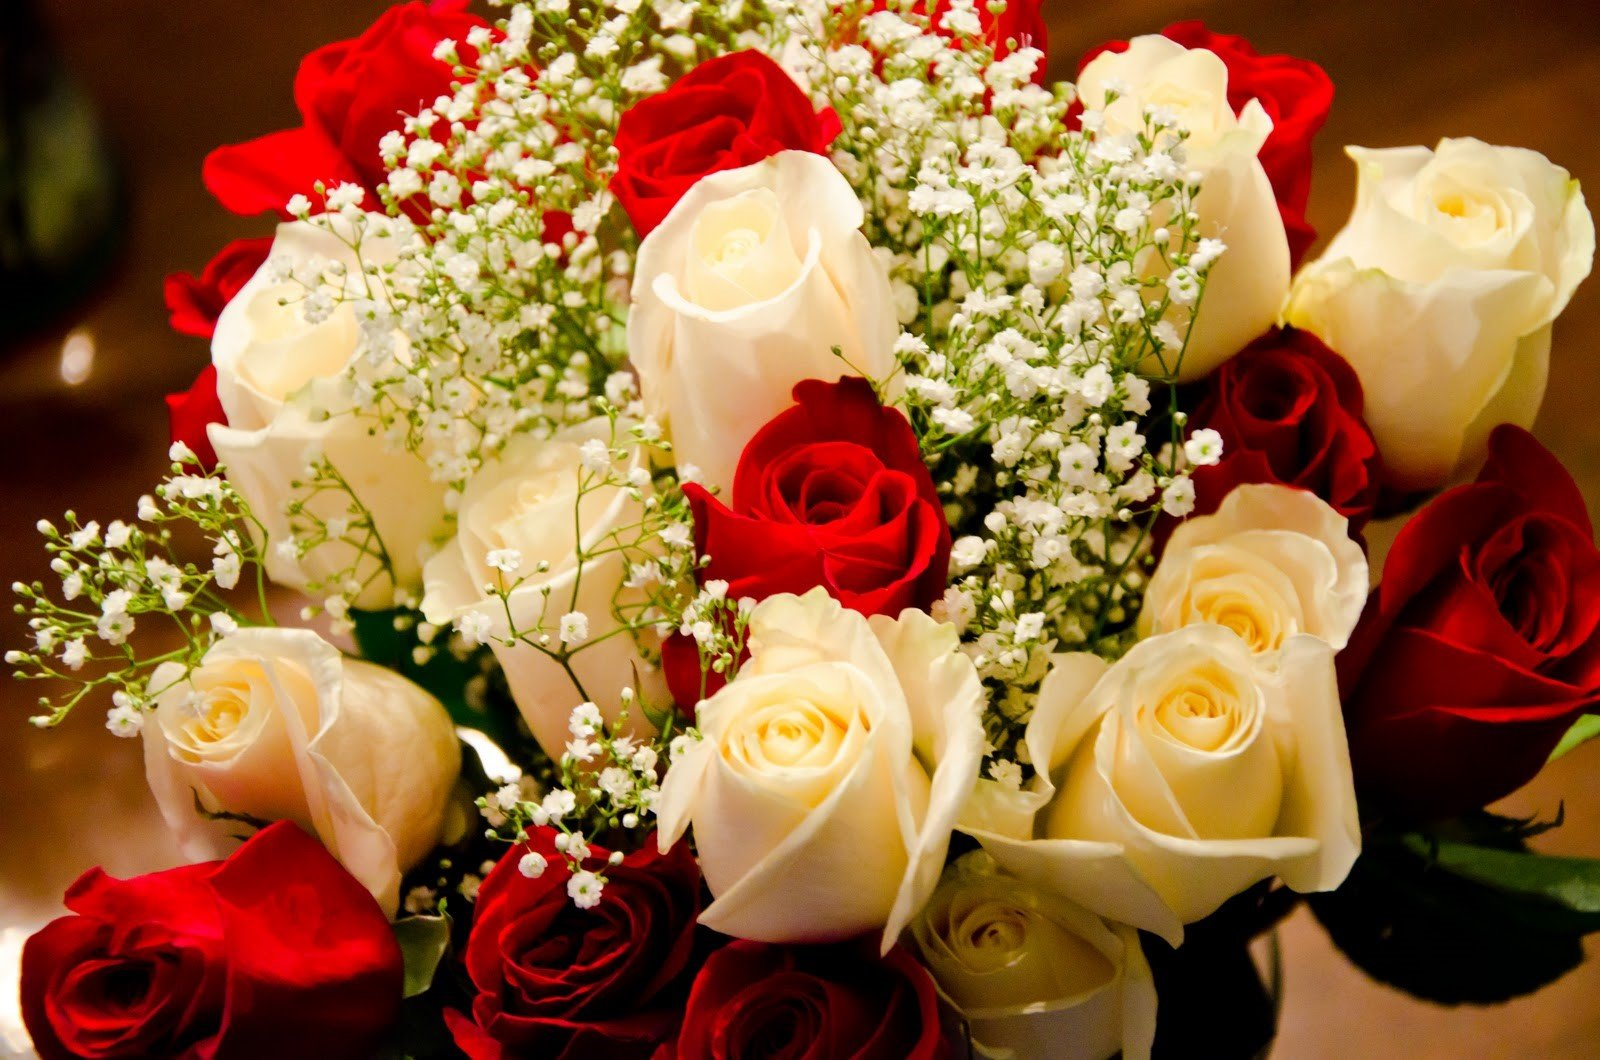 Specialty roses